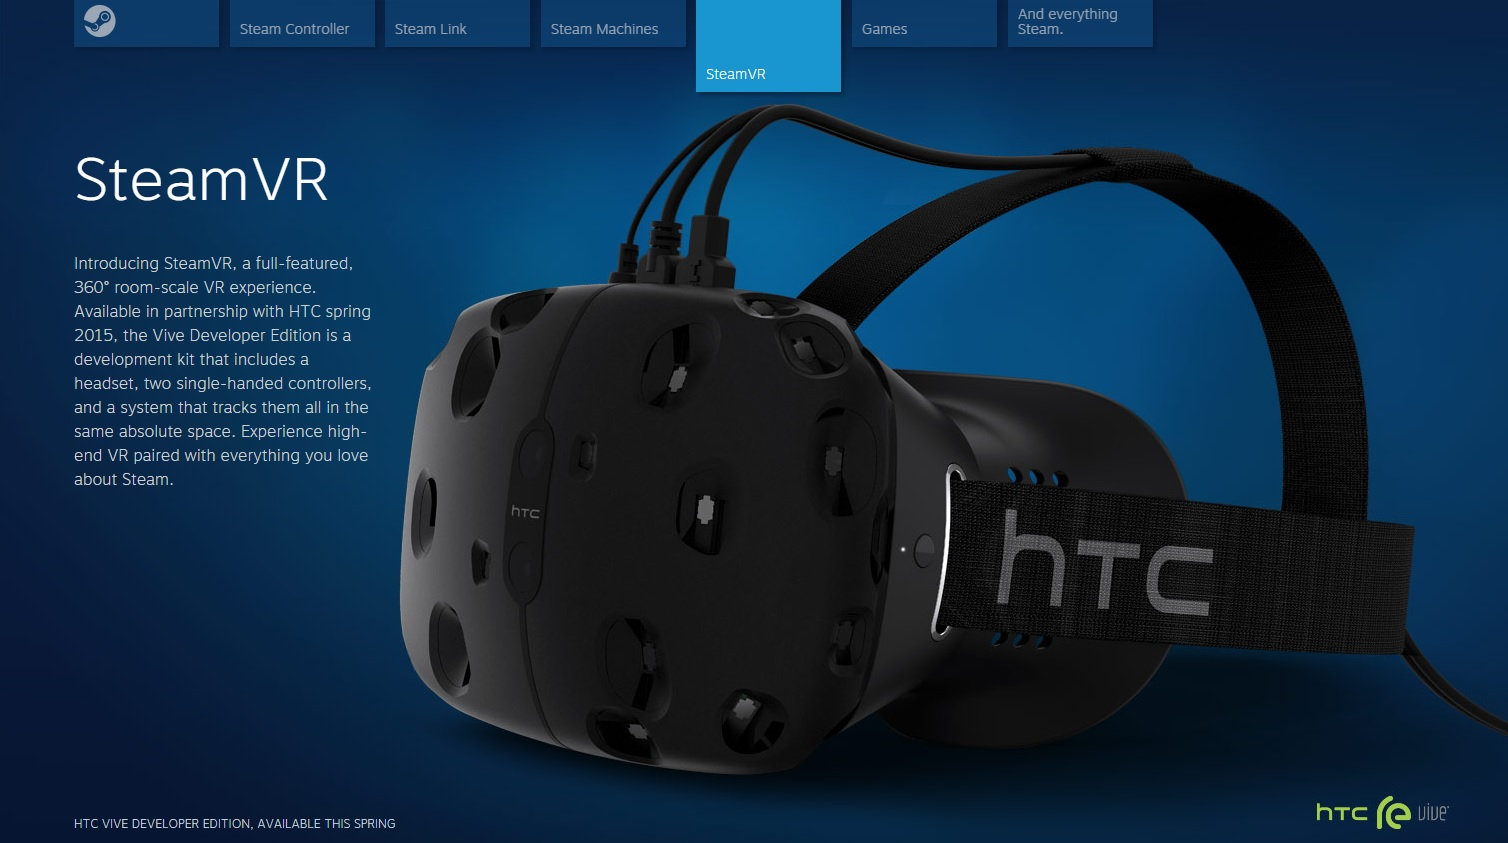 New Steam Page Suggests HTC Vive November Release – Road to VR